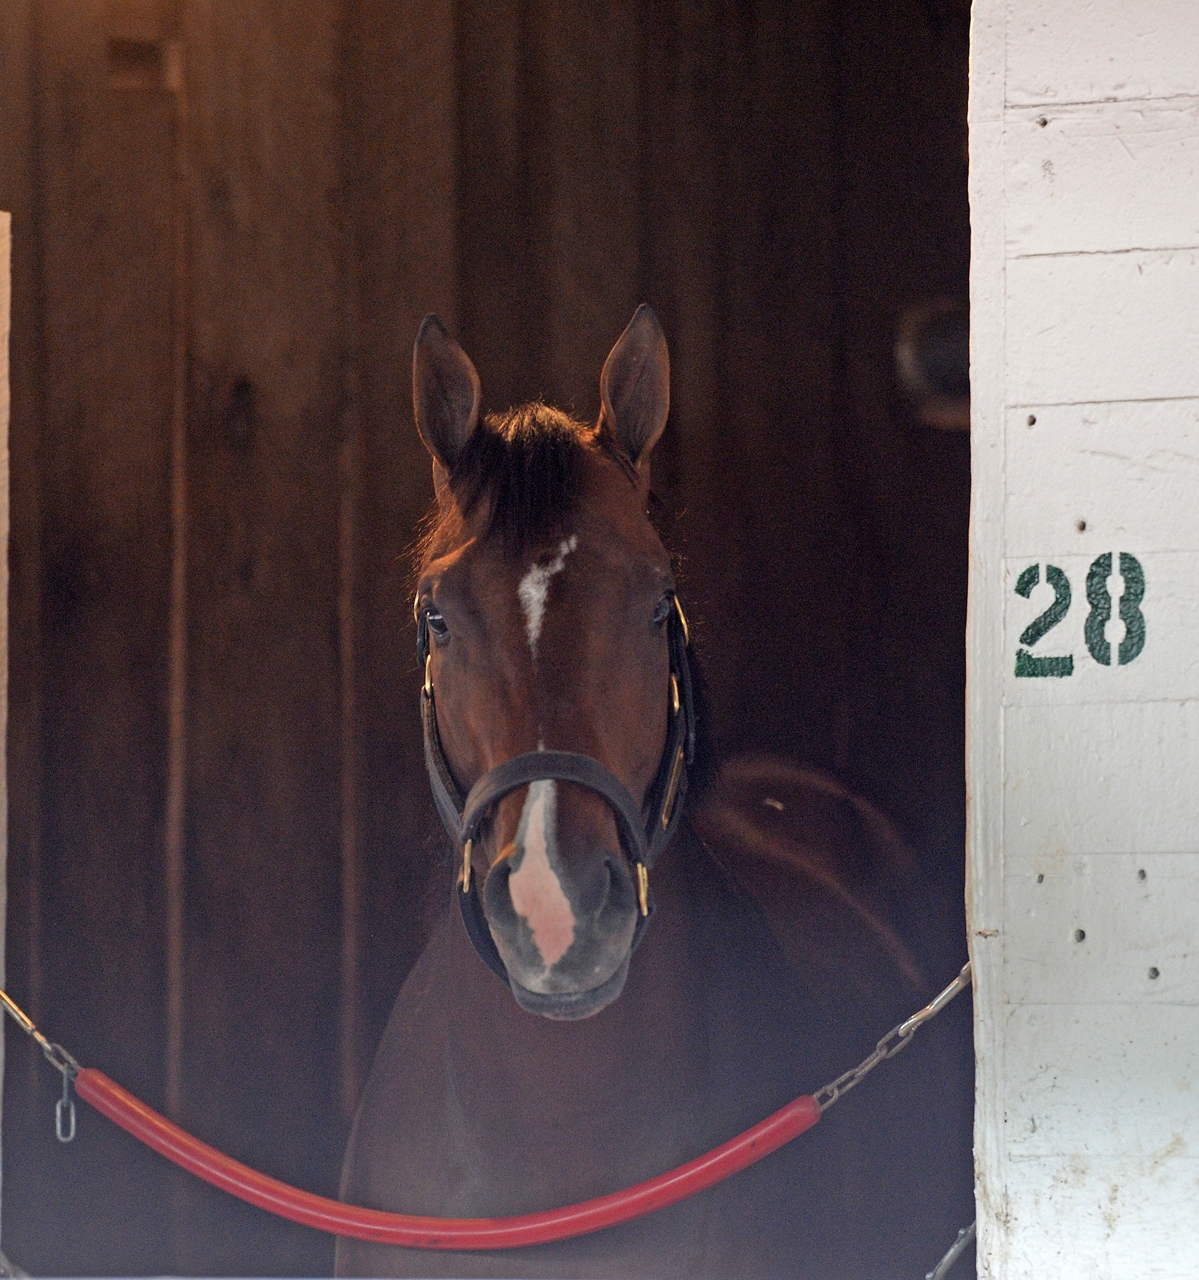 Always Dreaming wins Kentucky Derby, Villager's horse Girvin comes in 13th